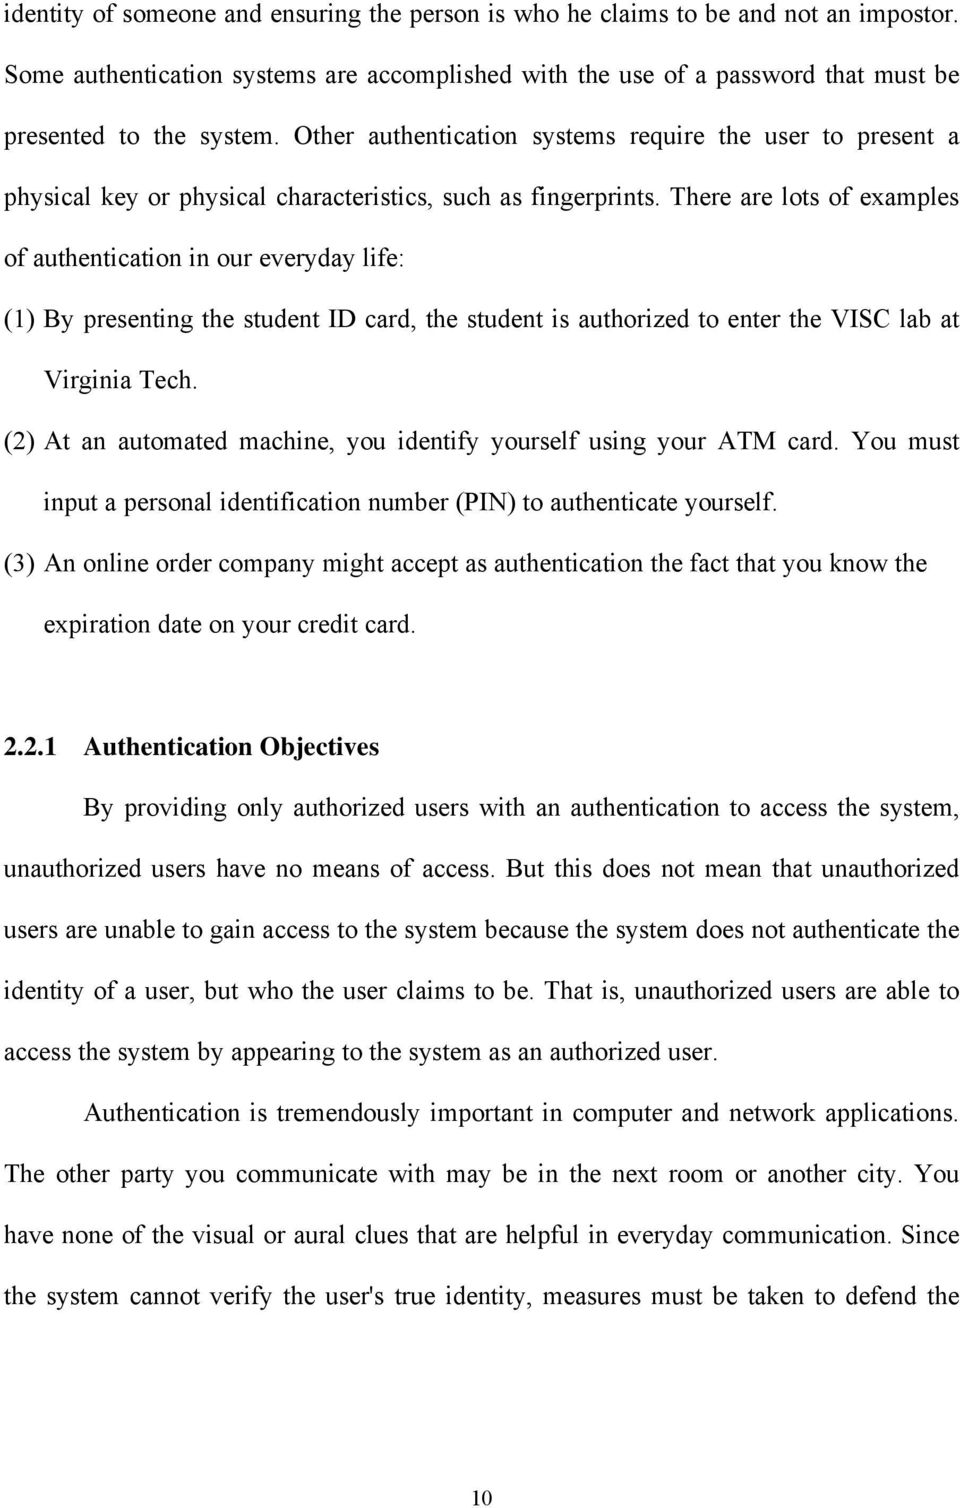 There are lots of examples of authentication in our everyday life: (1) By presenting the student ID card, the student is authorized to enter the VISC lab at Virginia Tech.